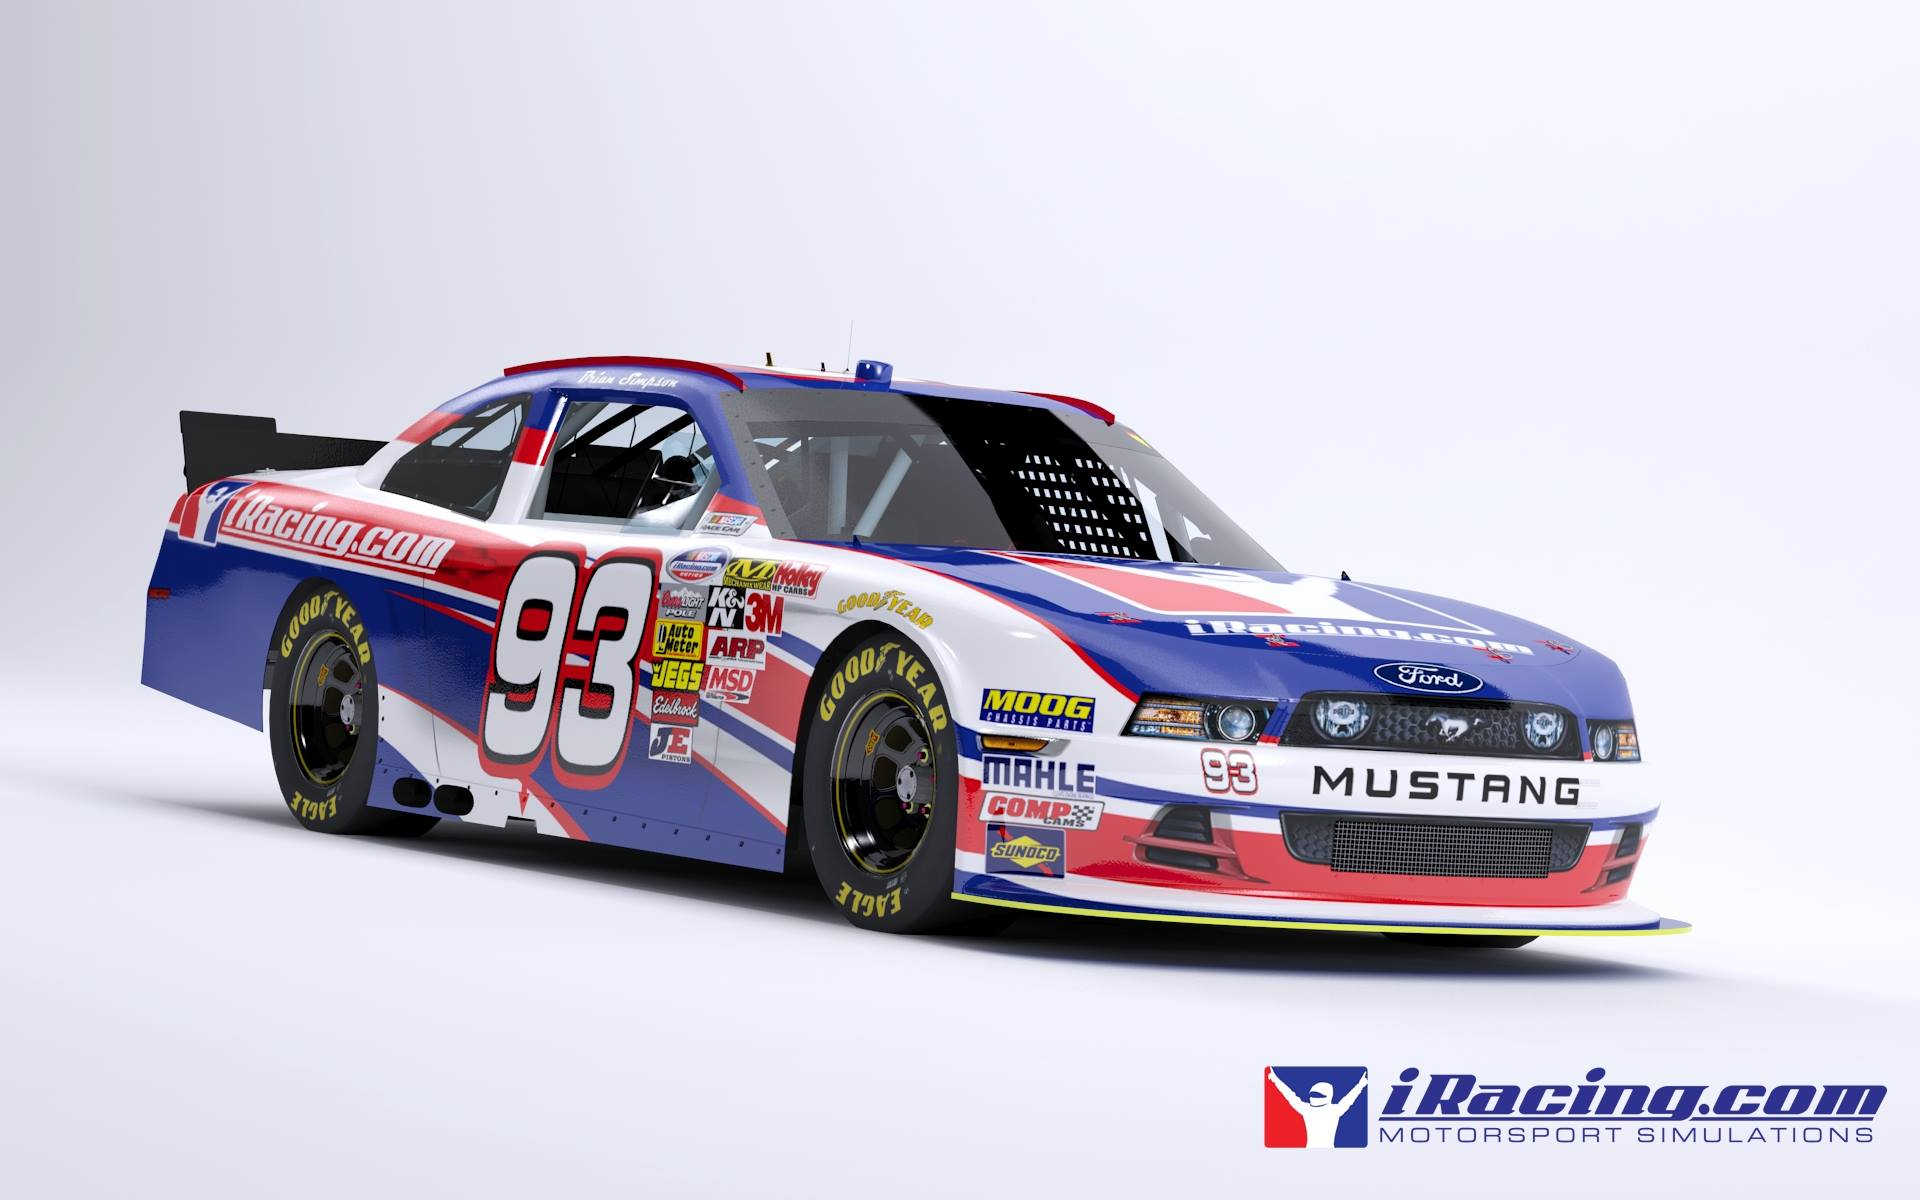 Iracing Com Mustang Nationwide Render Virtualr Net